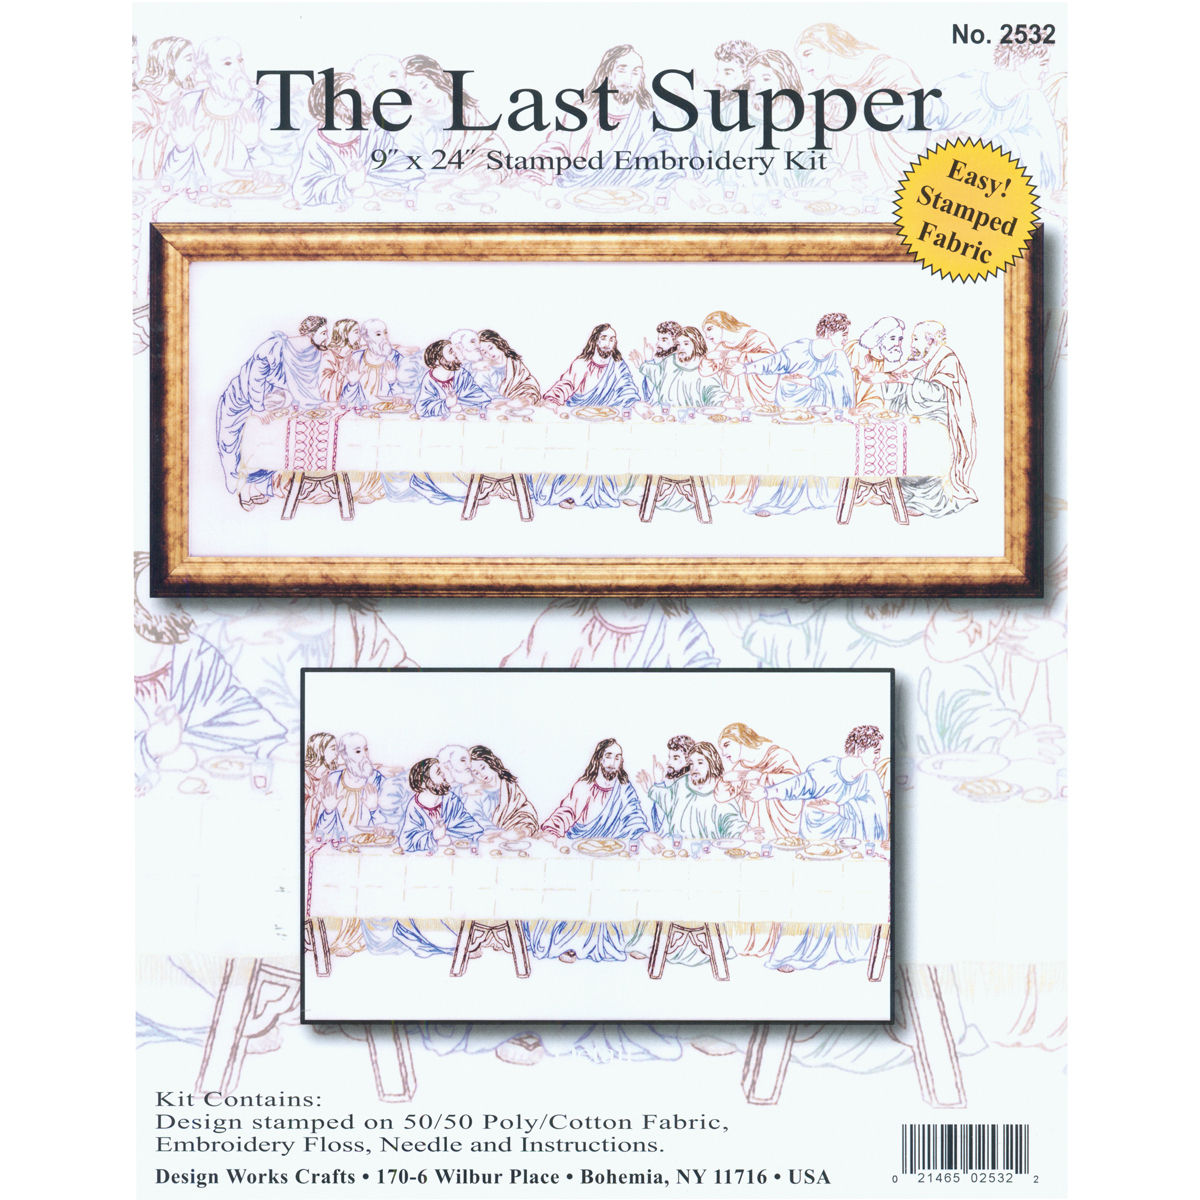 "Tobin Last Supper Stamped Embroidery Kit, 9"" x 24"", Stitched In Floss"